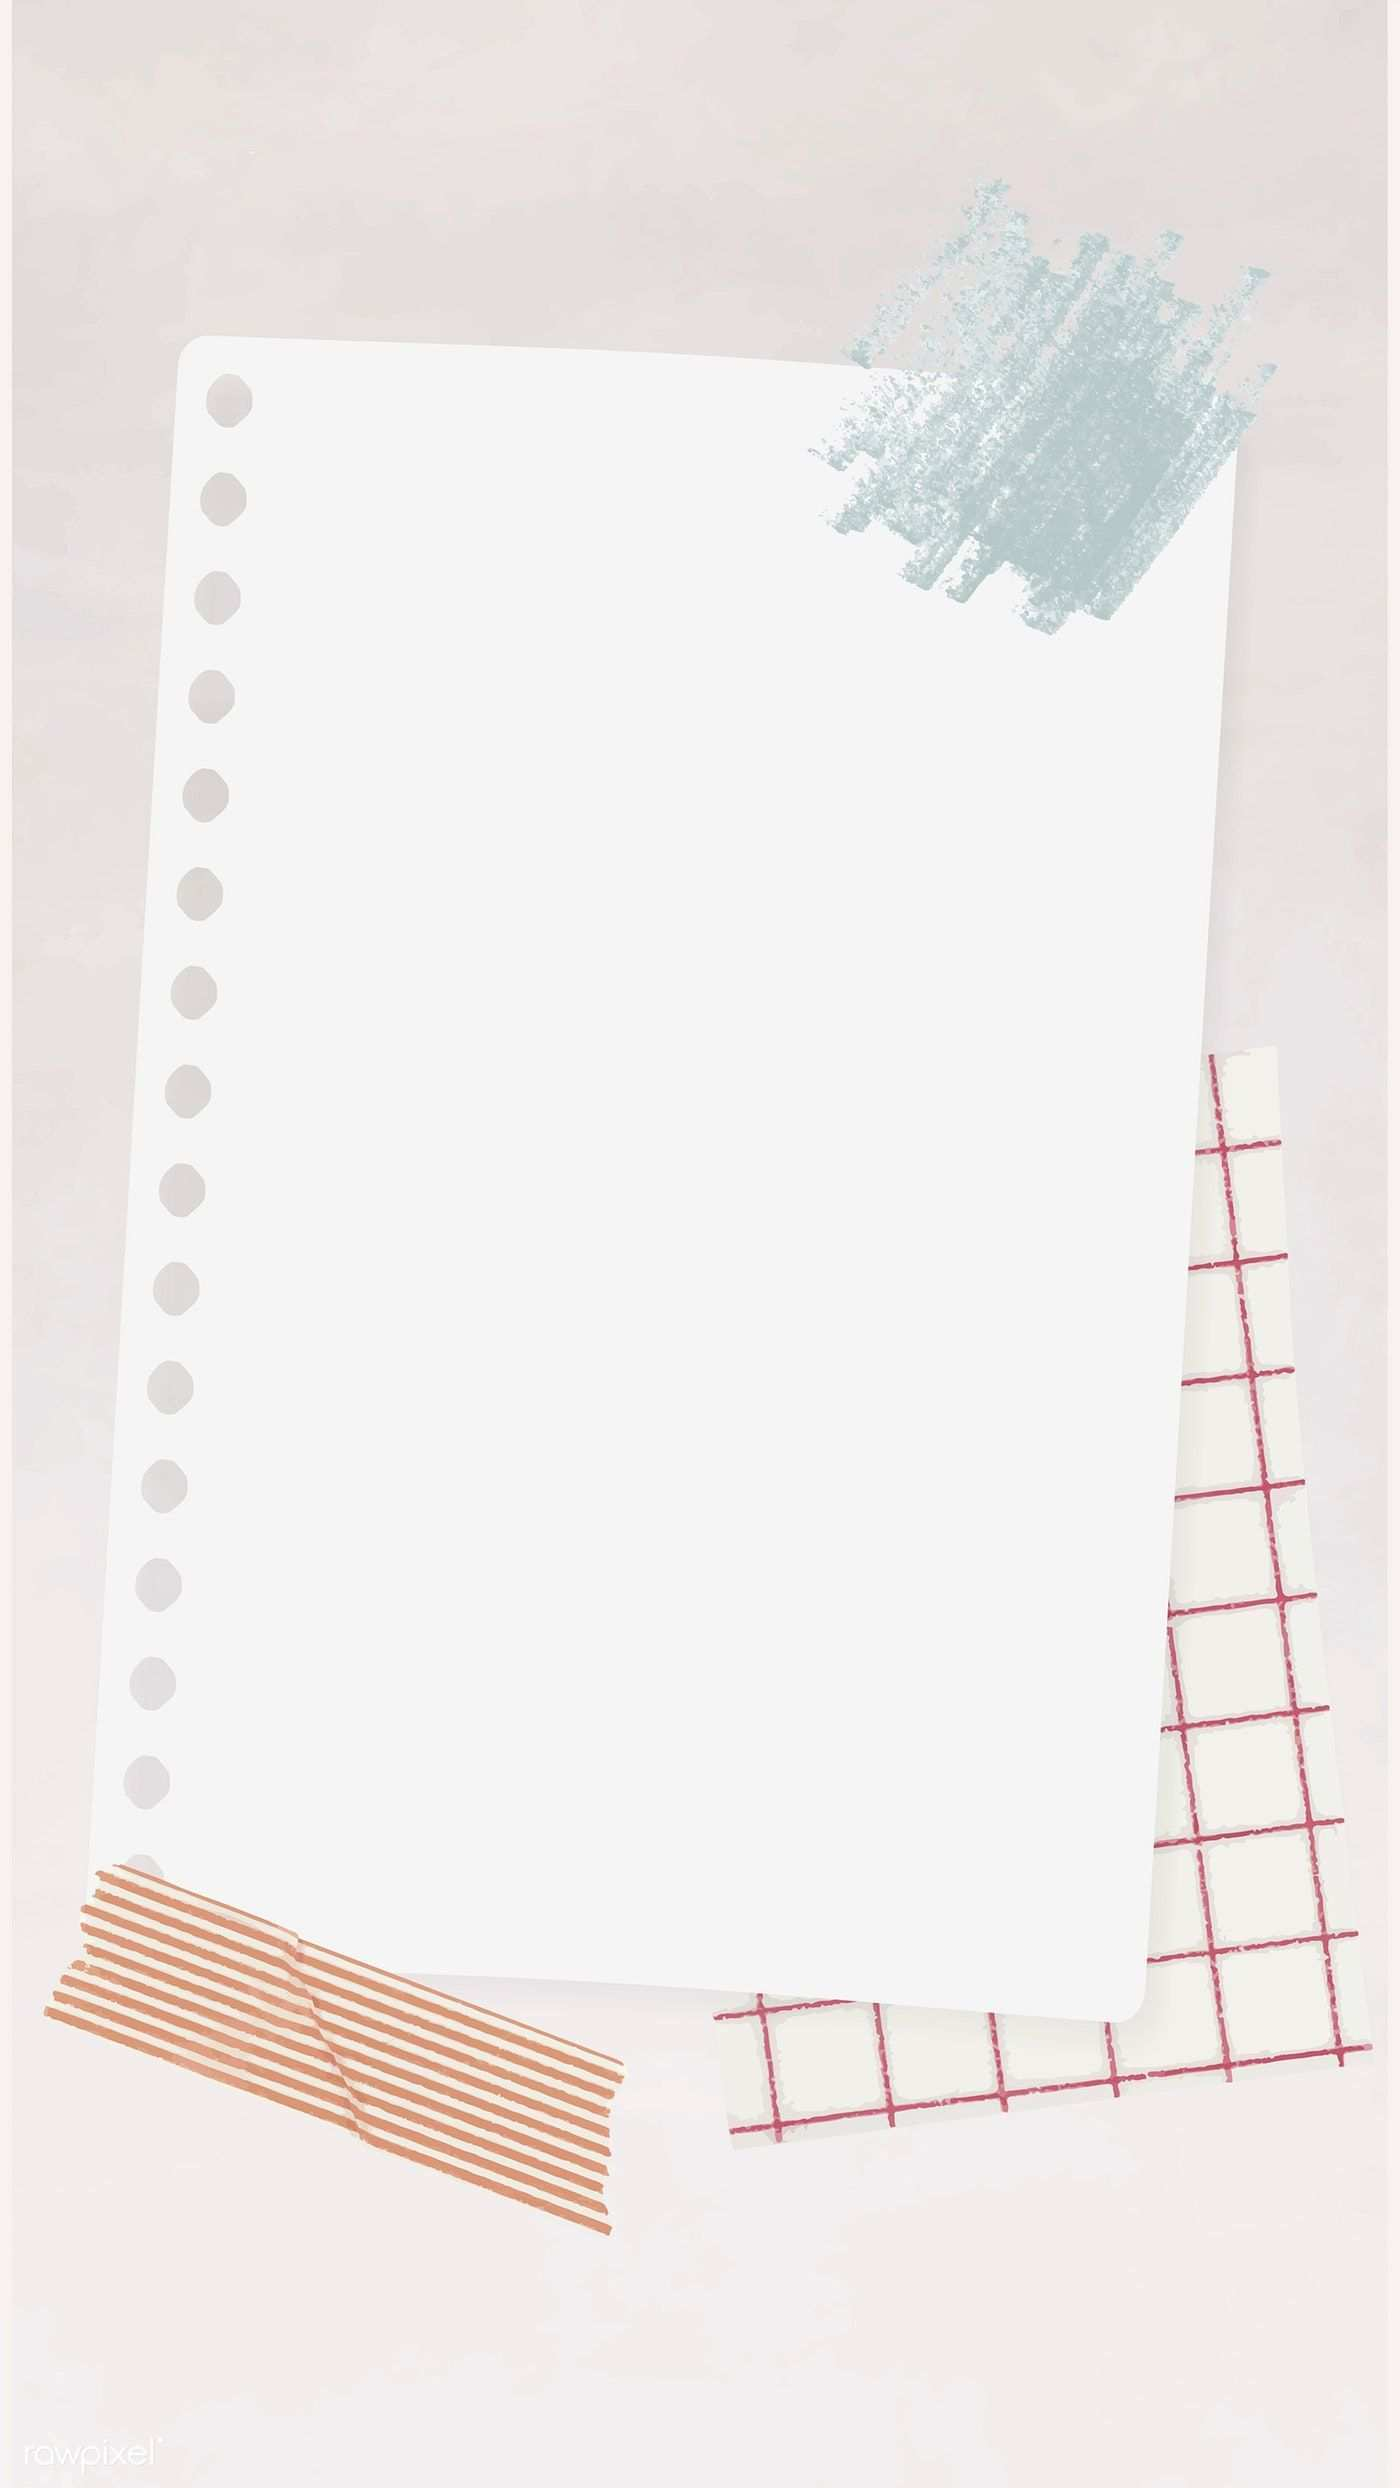 Download Premium Vector Of Blank White Notepaper Template Vector 1216043 Powerpoint Background Design Note Paper Instagram Frame